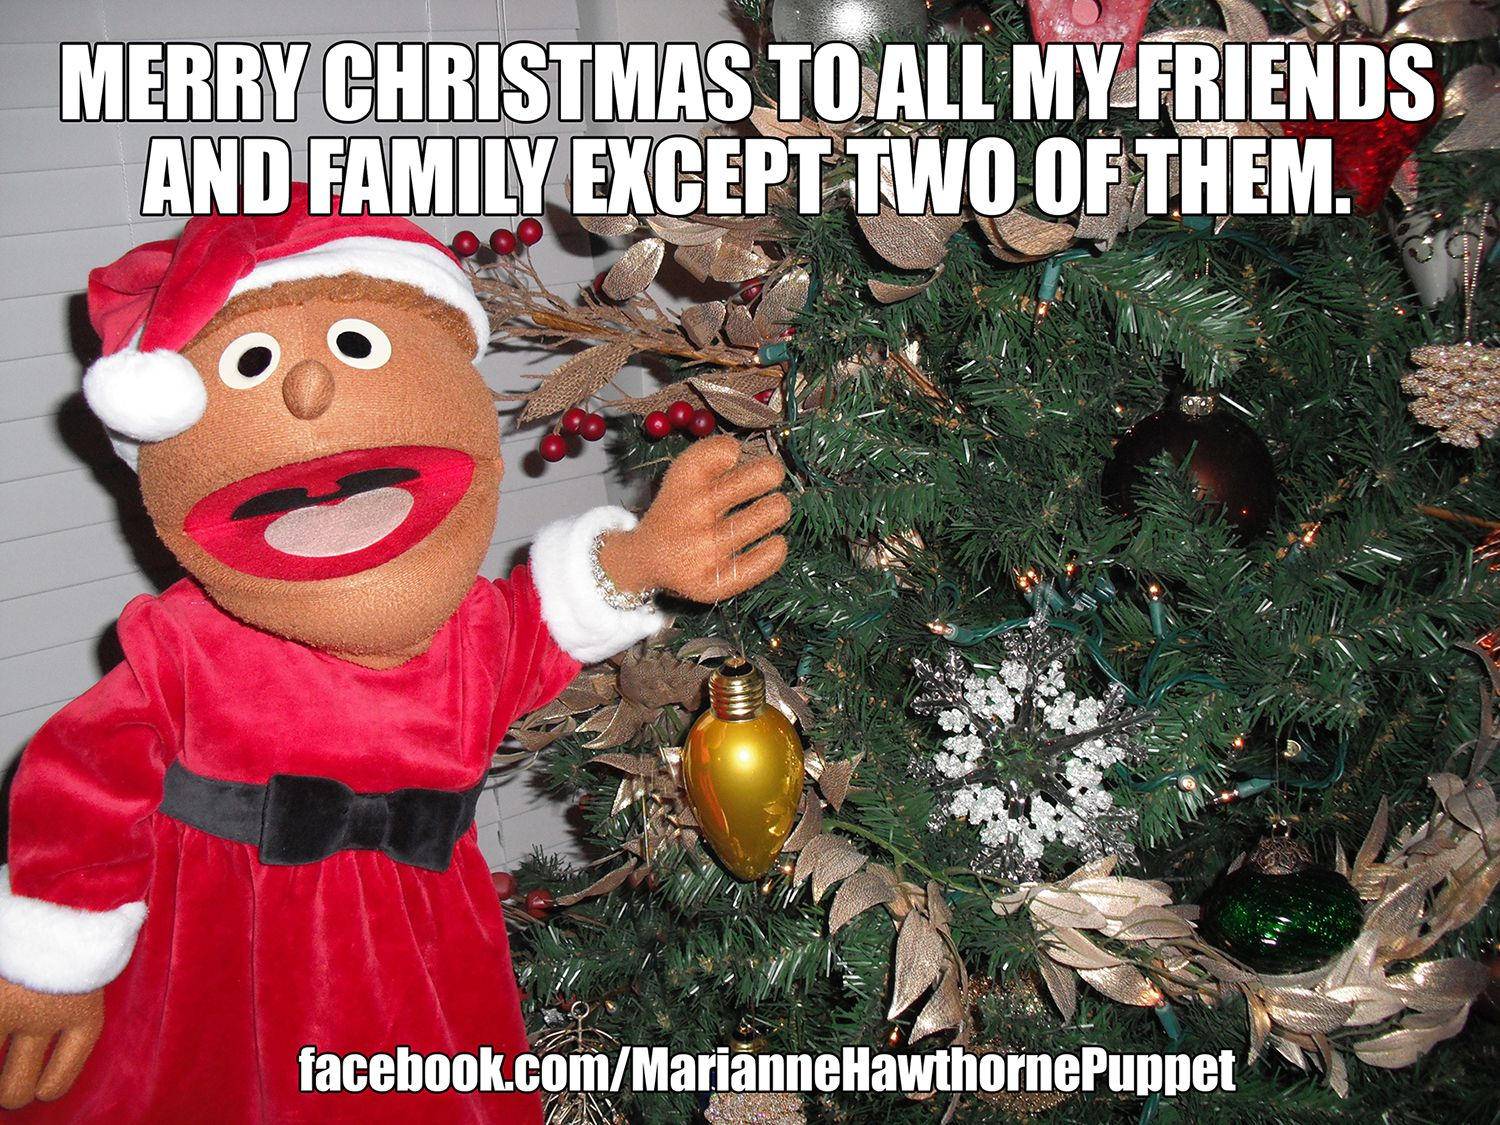 Funny Christmas Memes For Friends : Merry christmas to all my friends and family except two of